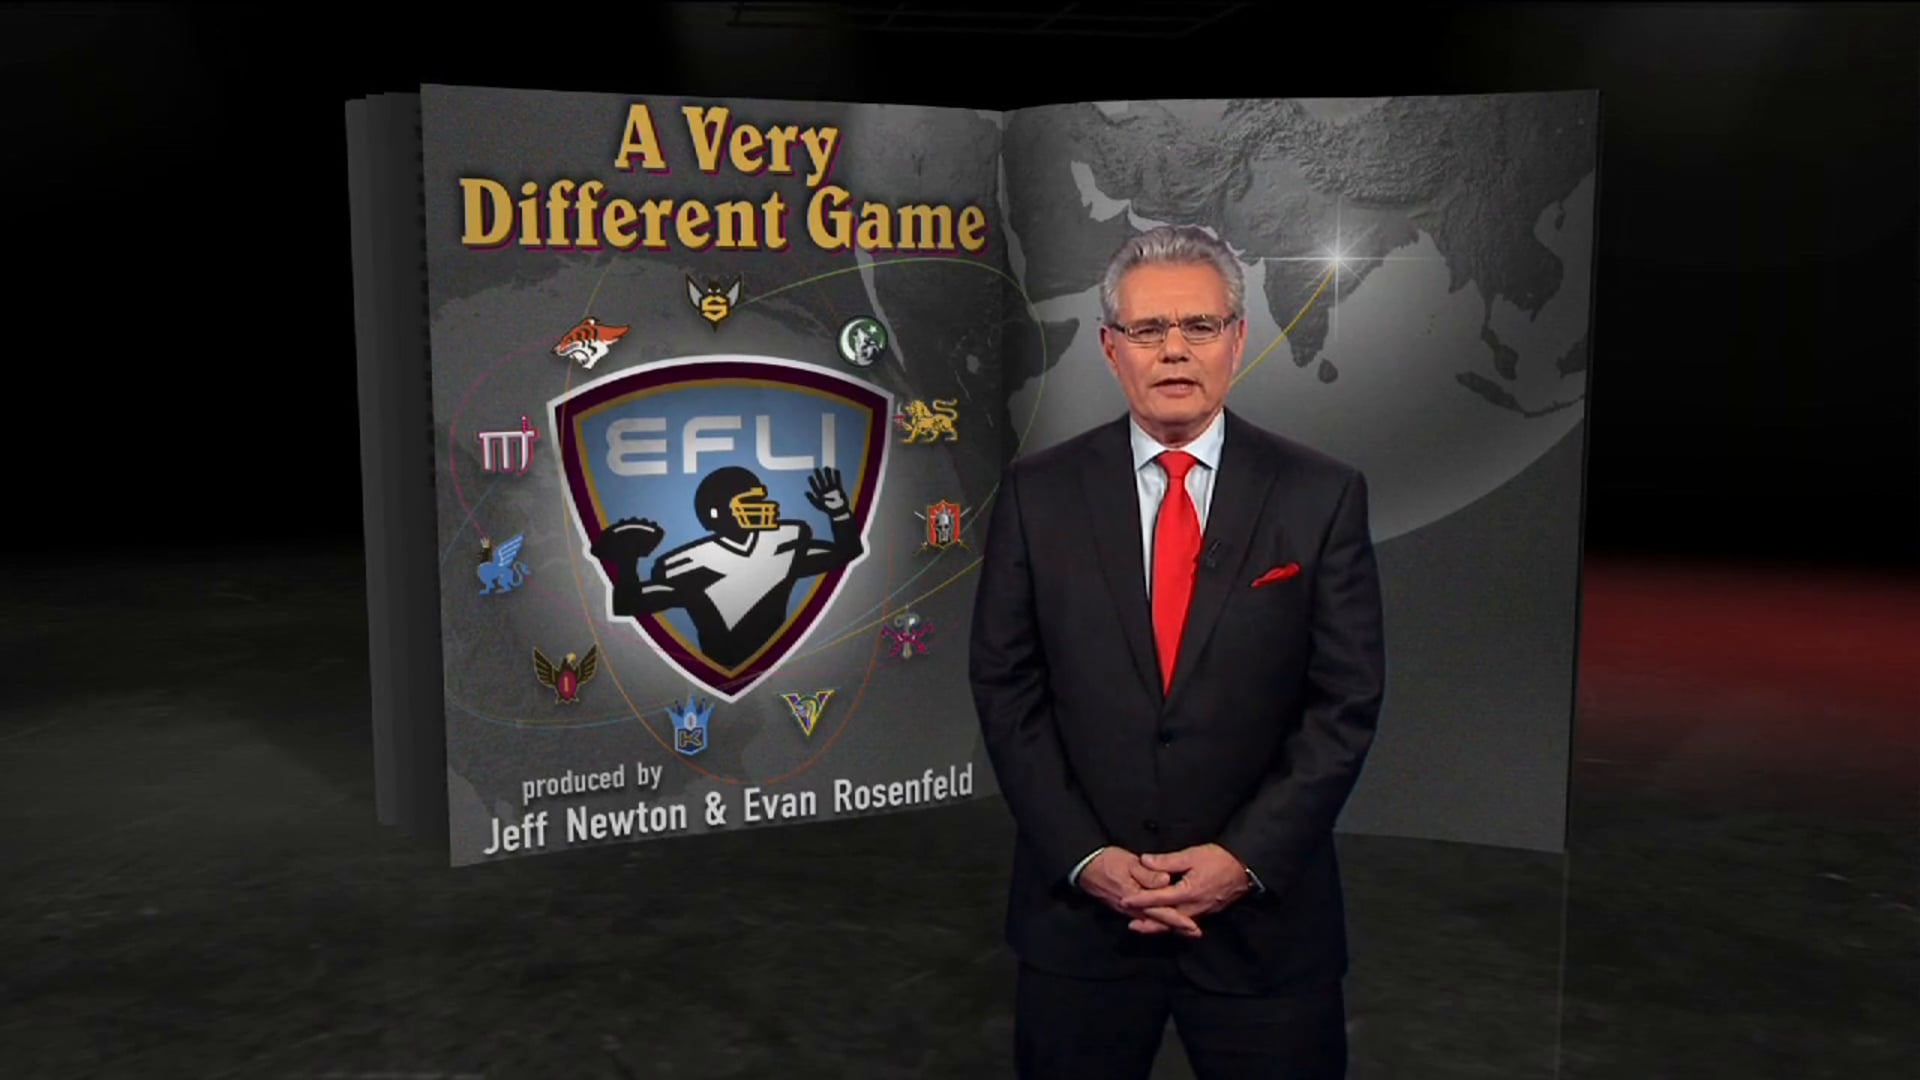 60 MINUTES: A Very Different Game